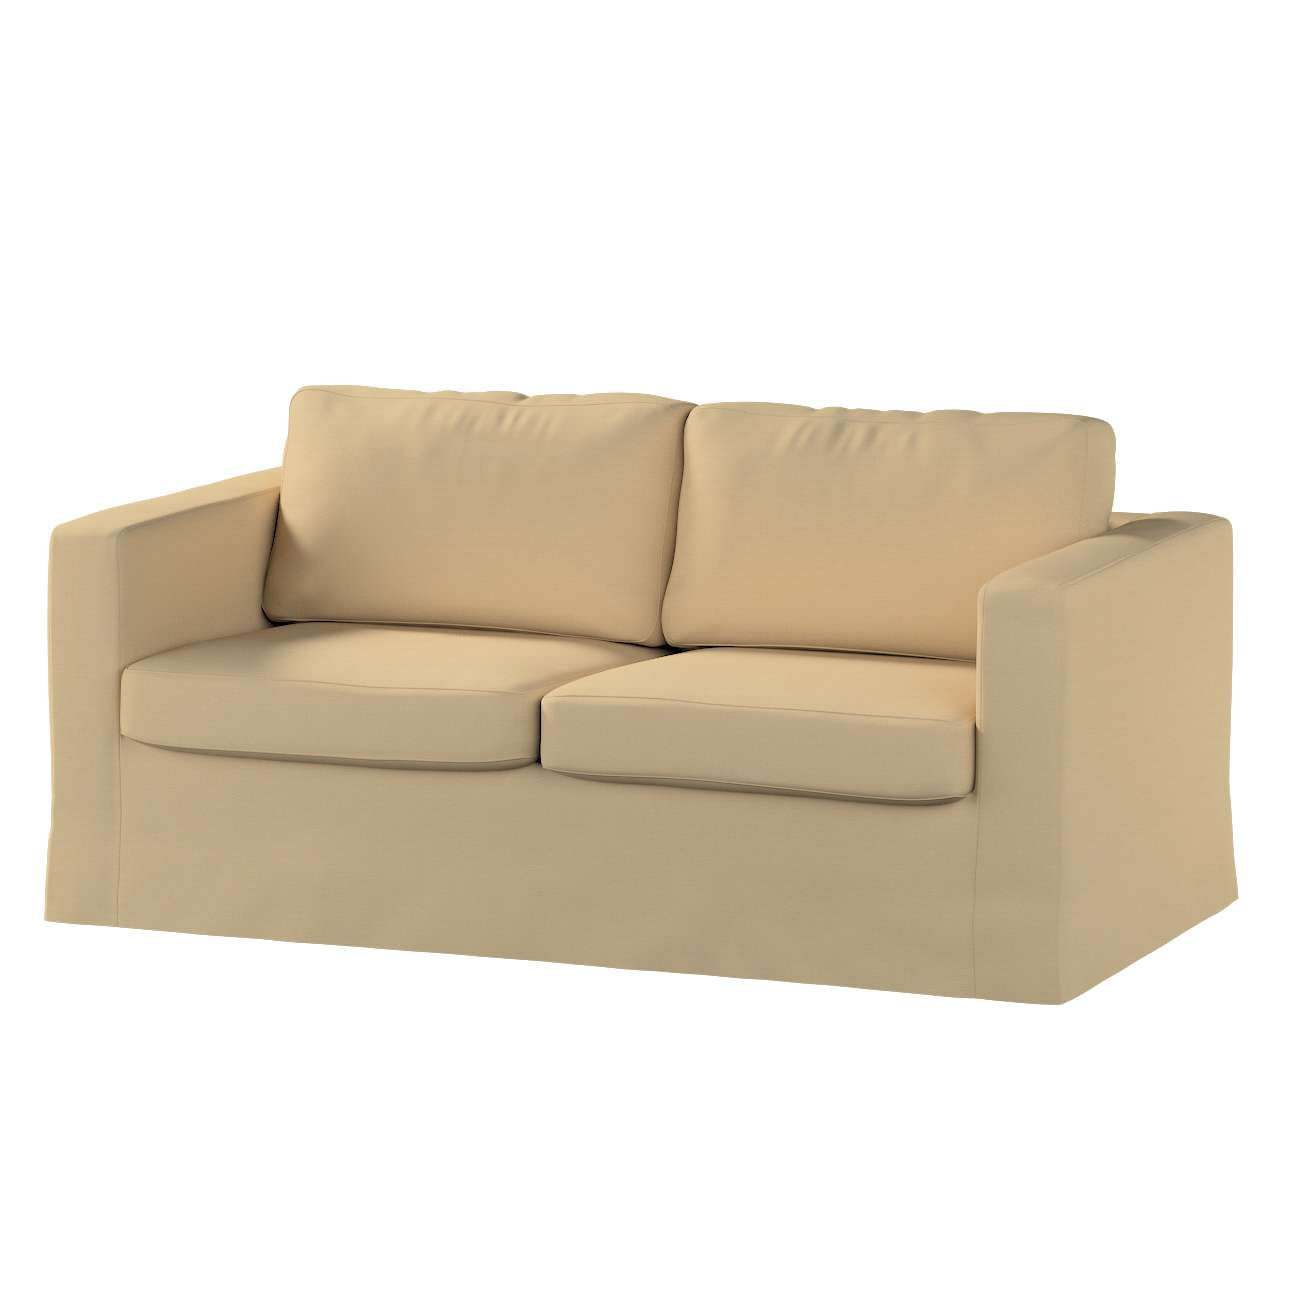 Floor length Karlstad 2-seater sofa cover in collection Panama Cotton, fabric: 702-01